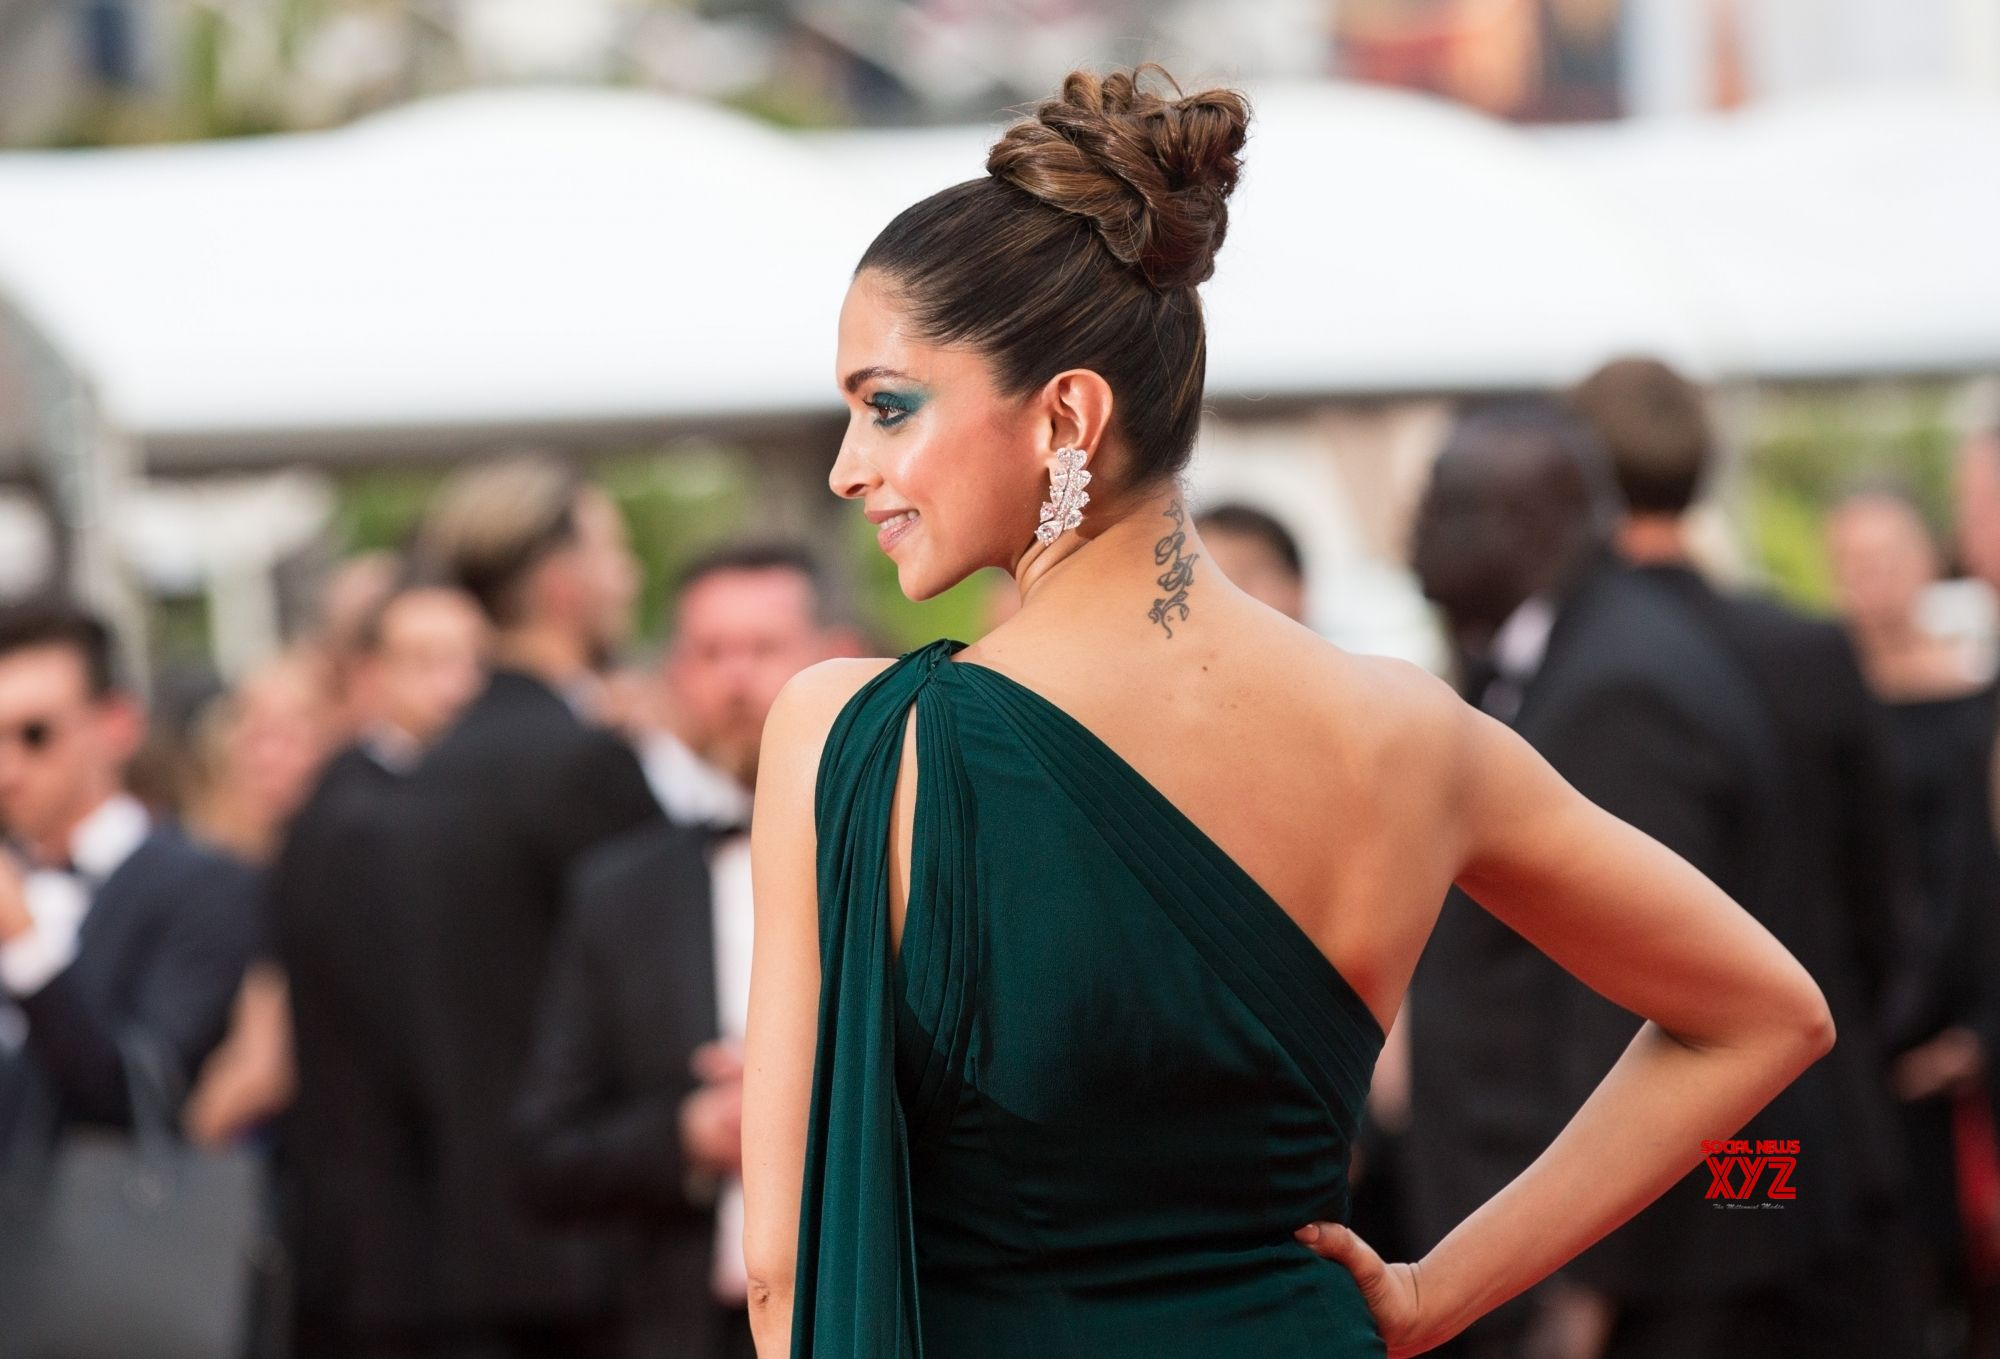 Cannes (France) : Deepika Padukone at Cannes International Film Festival